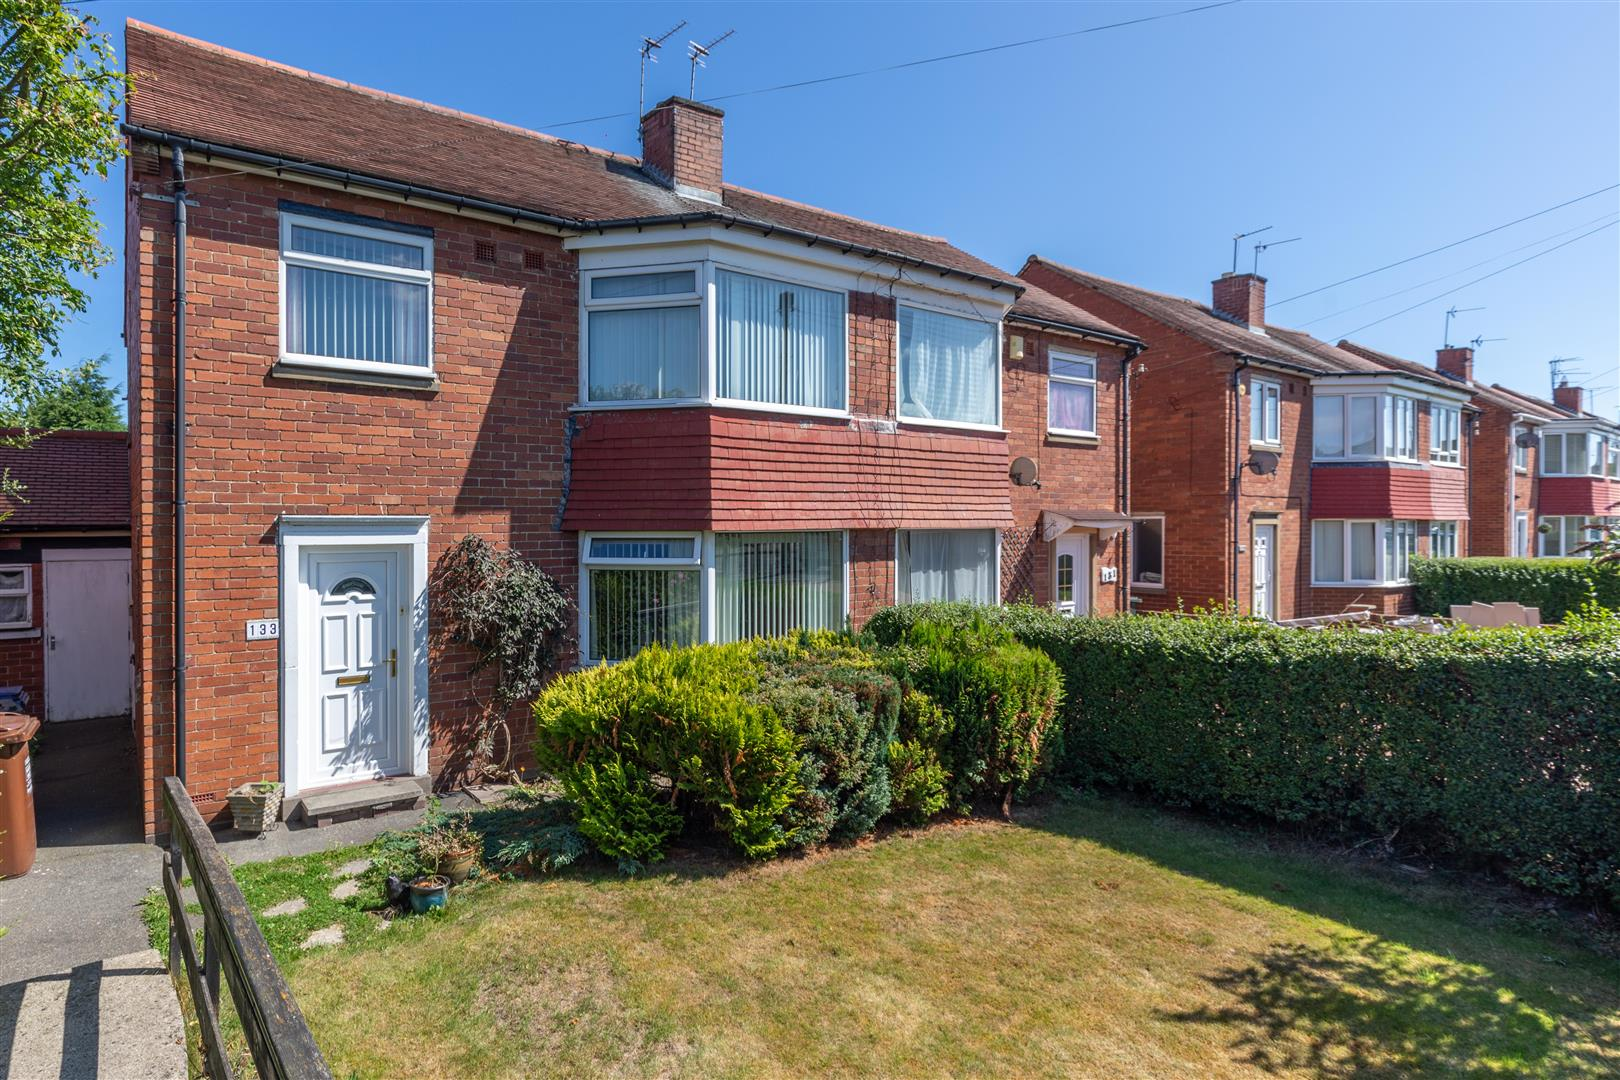 3 bed semi-detached house for sale in Gosforth, NE3 3PN - Property Image 1